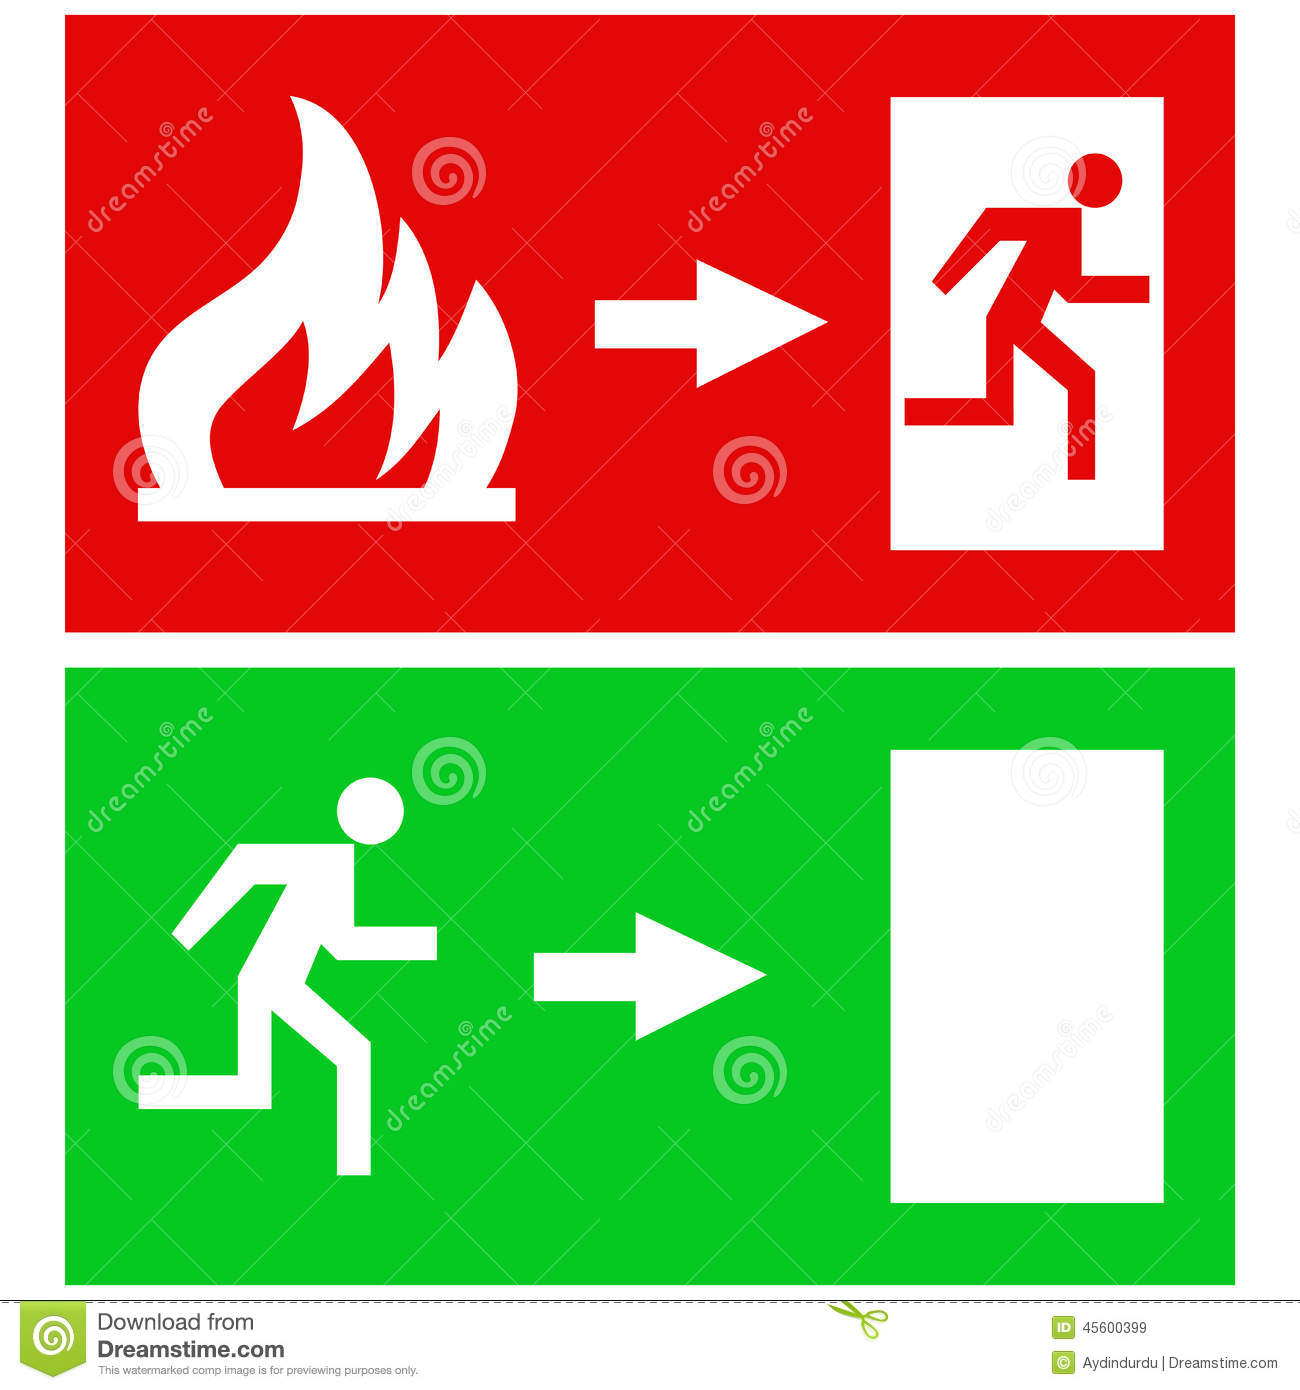 Fire exit signs stock vector illustration of design 45600399 fire exit signs buycottarizona Images